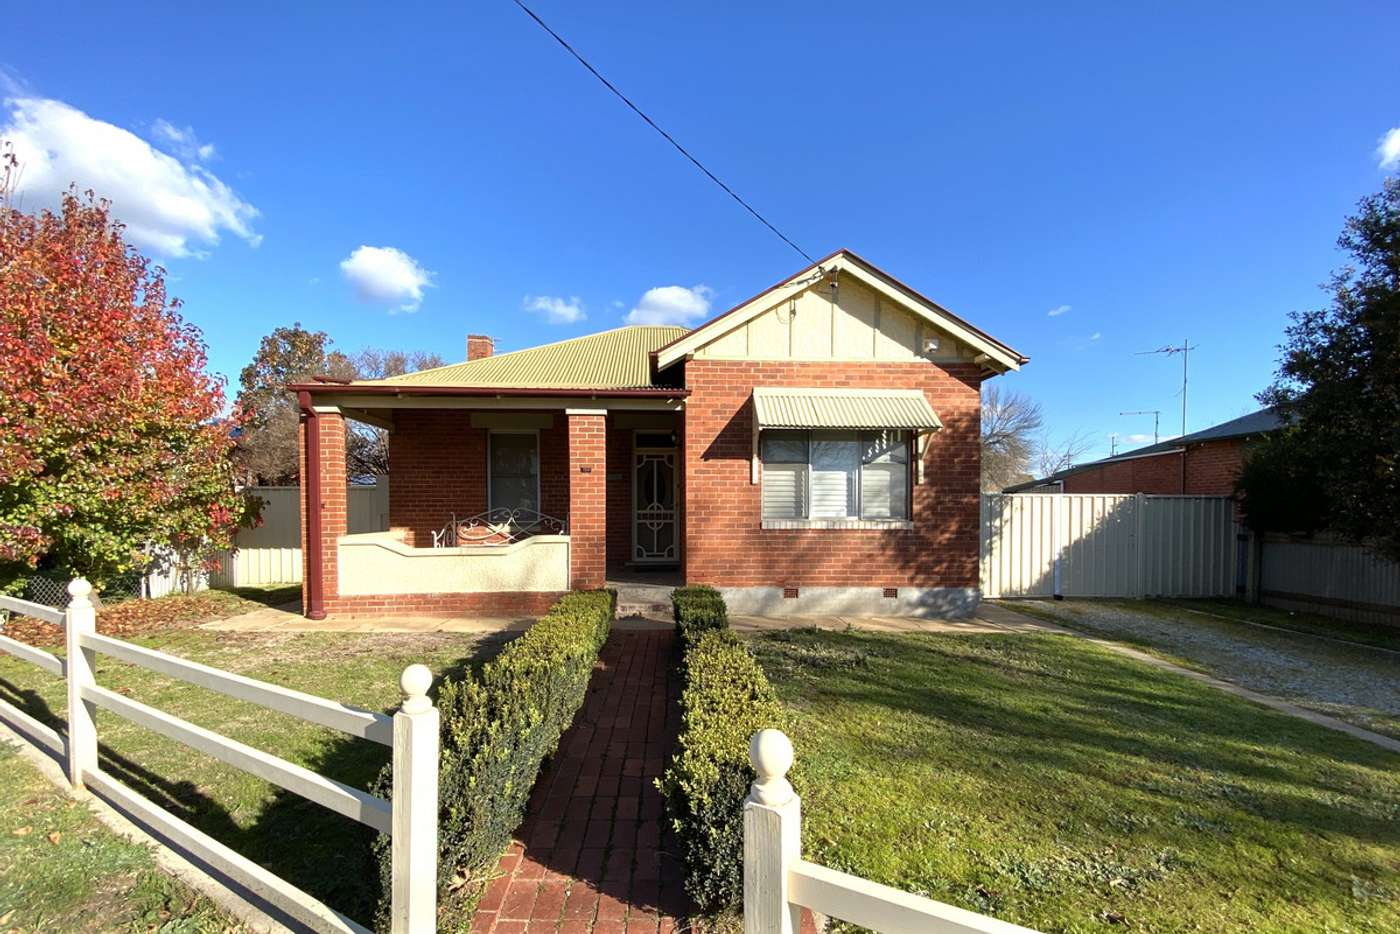 Main view of Homely house listing, 42 Meurant Avenue, Wagga Wagga NSW 2650